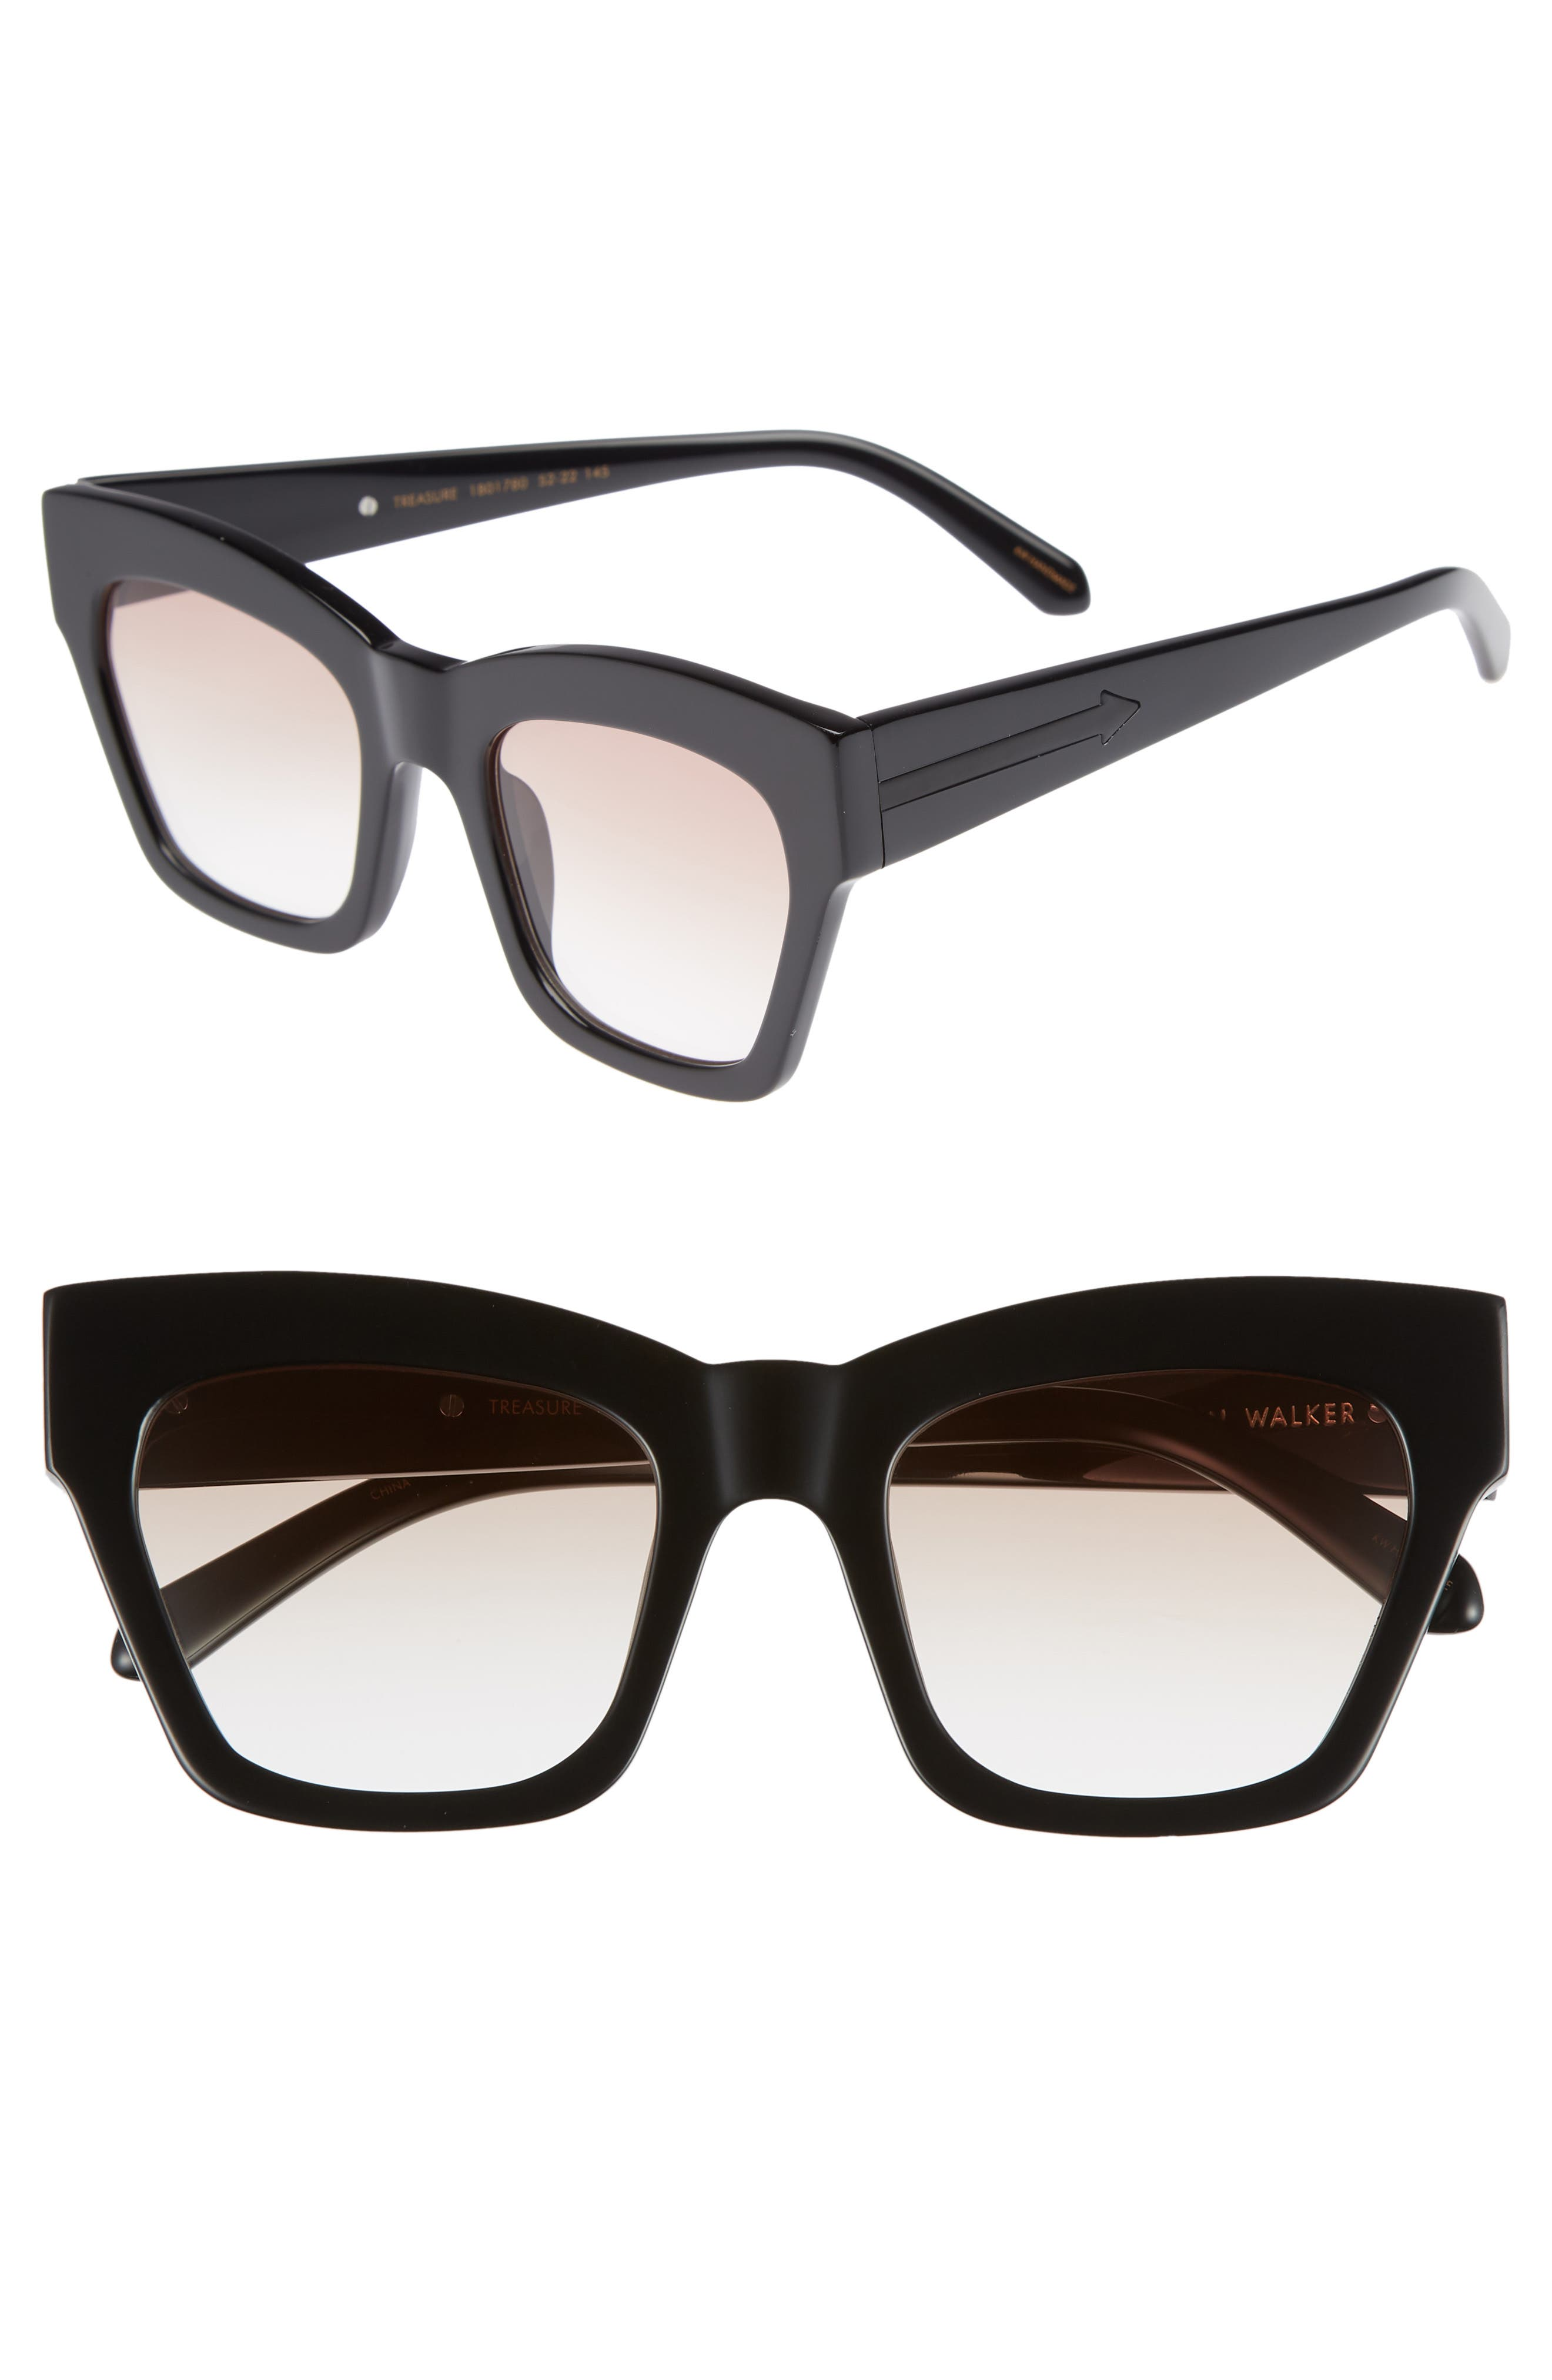 Treasure 52mm Cat Eye Sunglasses,                             Main thumbnail 1, color,                             SHINY BLACK/ BROWN